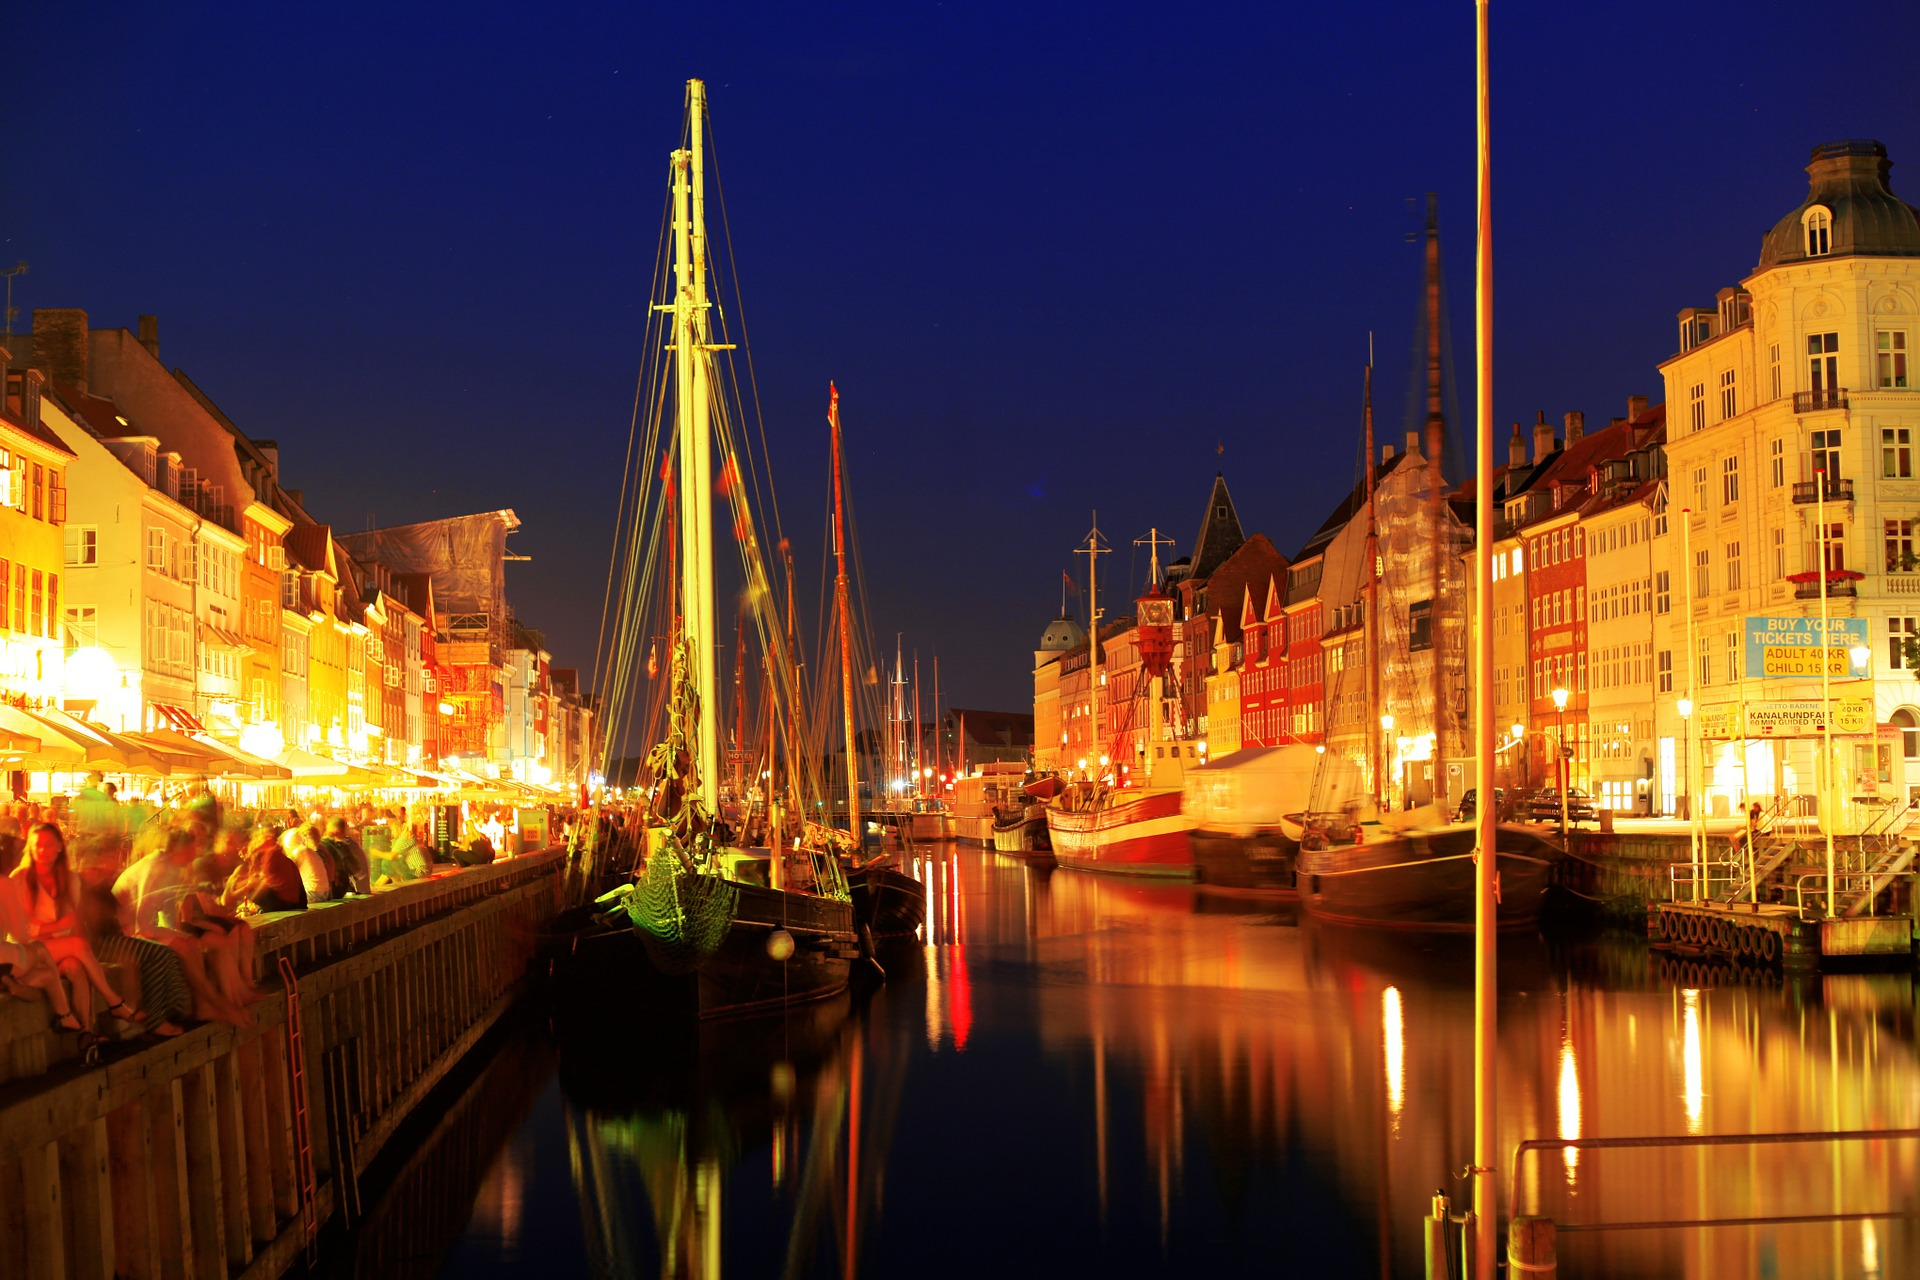 Copenhagen, Denmark at night